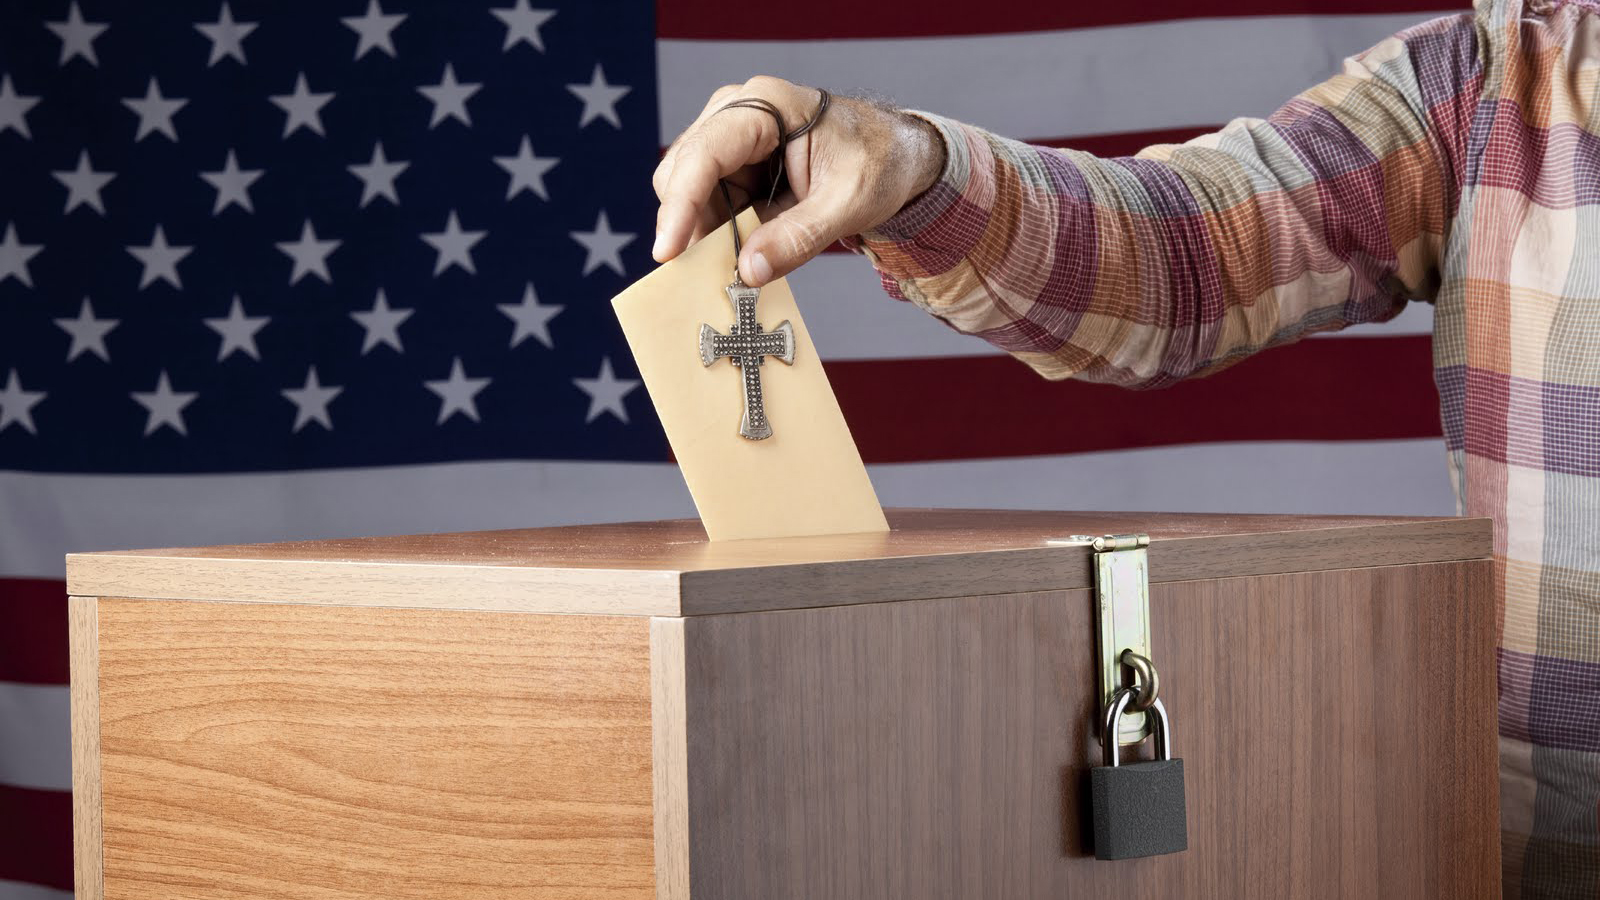 Many voting with a cross, in front of a U.S. flag.